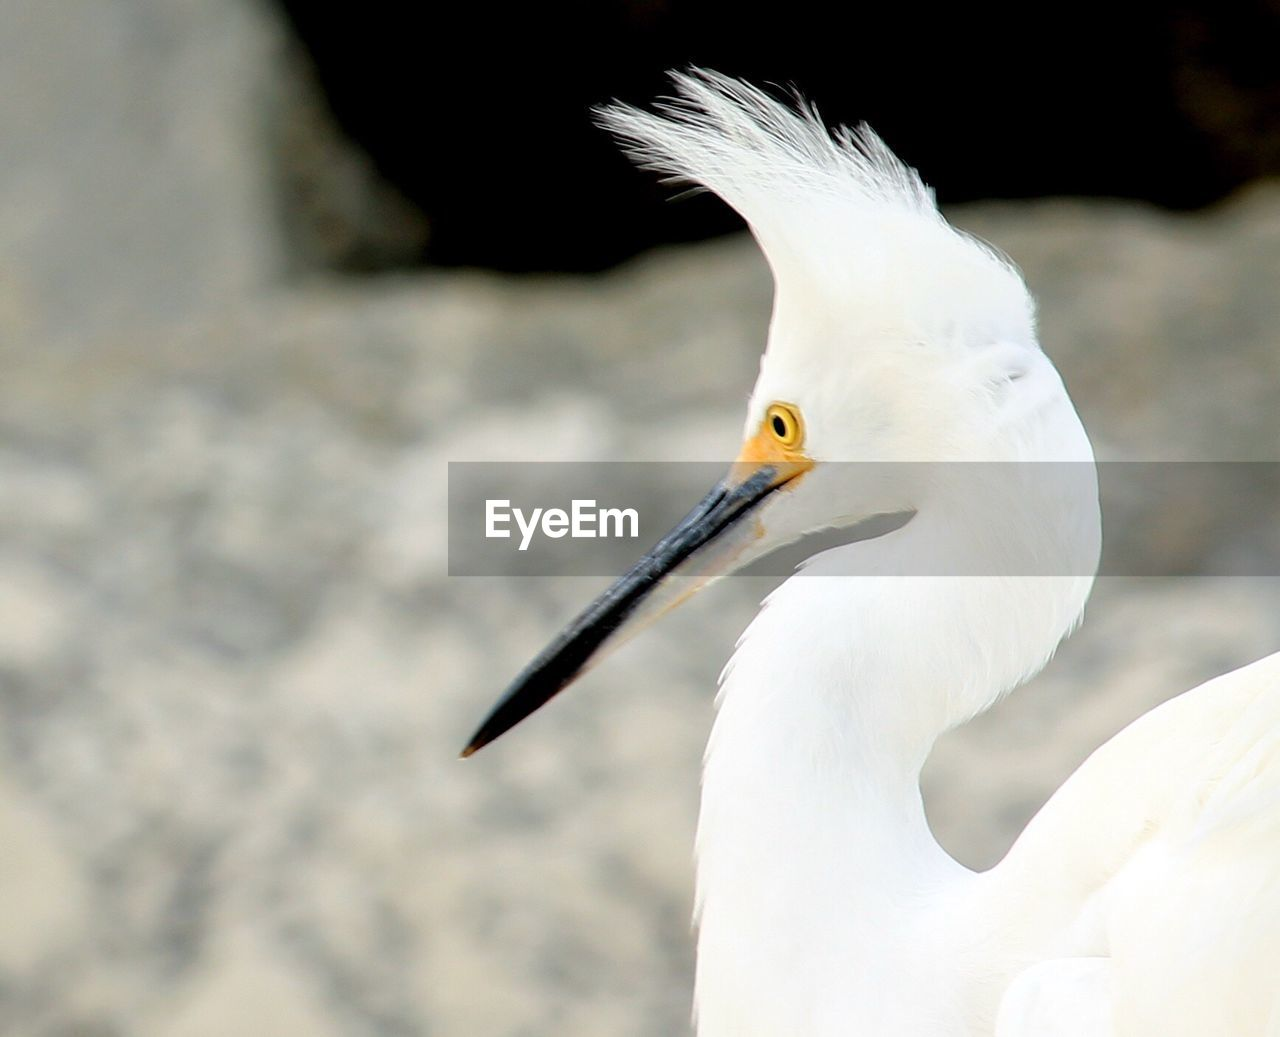 bird, one animal, animals in the wild, animal themes, animal wildlife, beak, white color, day, focus on foreground, nature, heron, outdoors, close-up, beauty in nature, no people, crane - bird